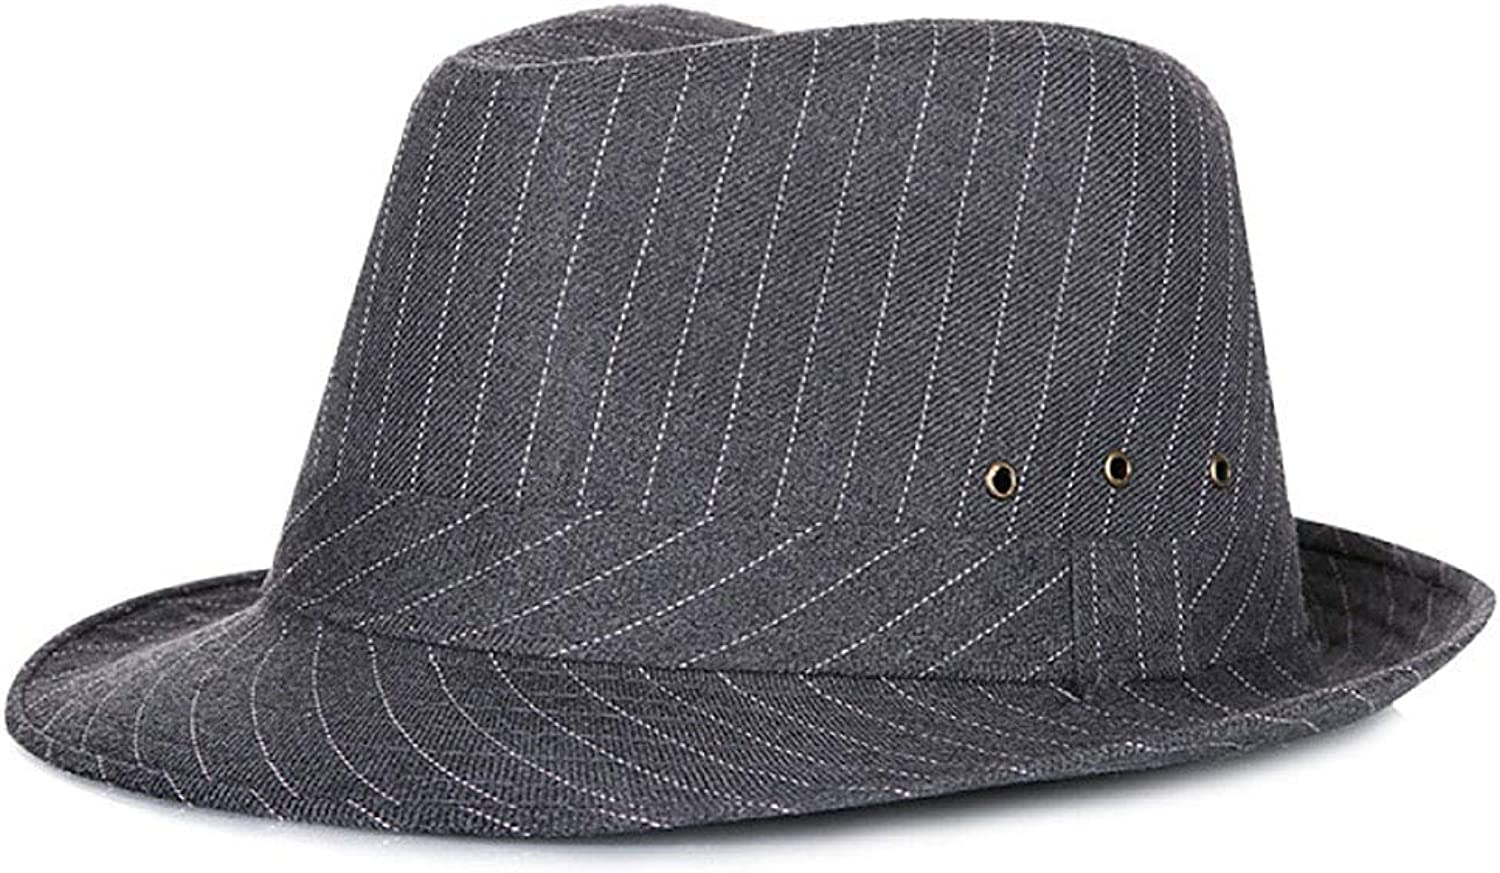 Men & Women's Classic Hat MiddleAged Men's Autumn and Winter New Warm and Breathable Strong Fashion Hat